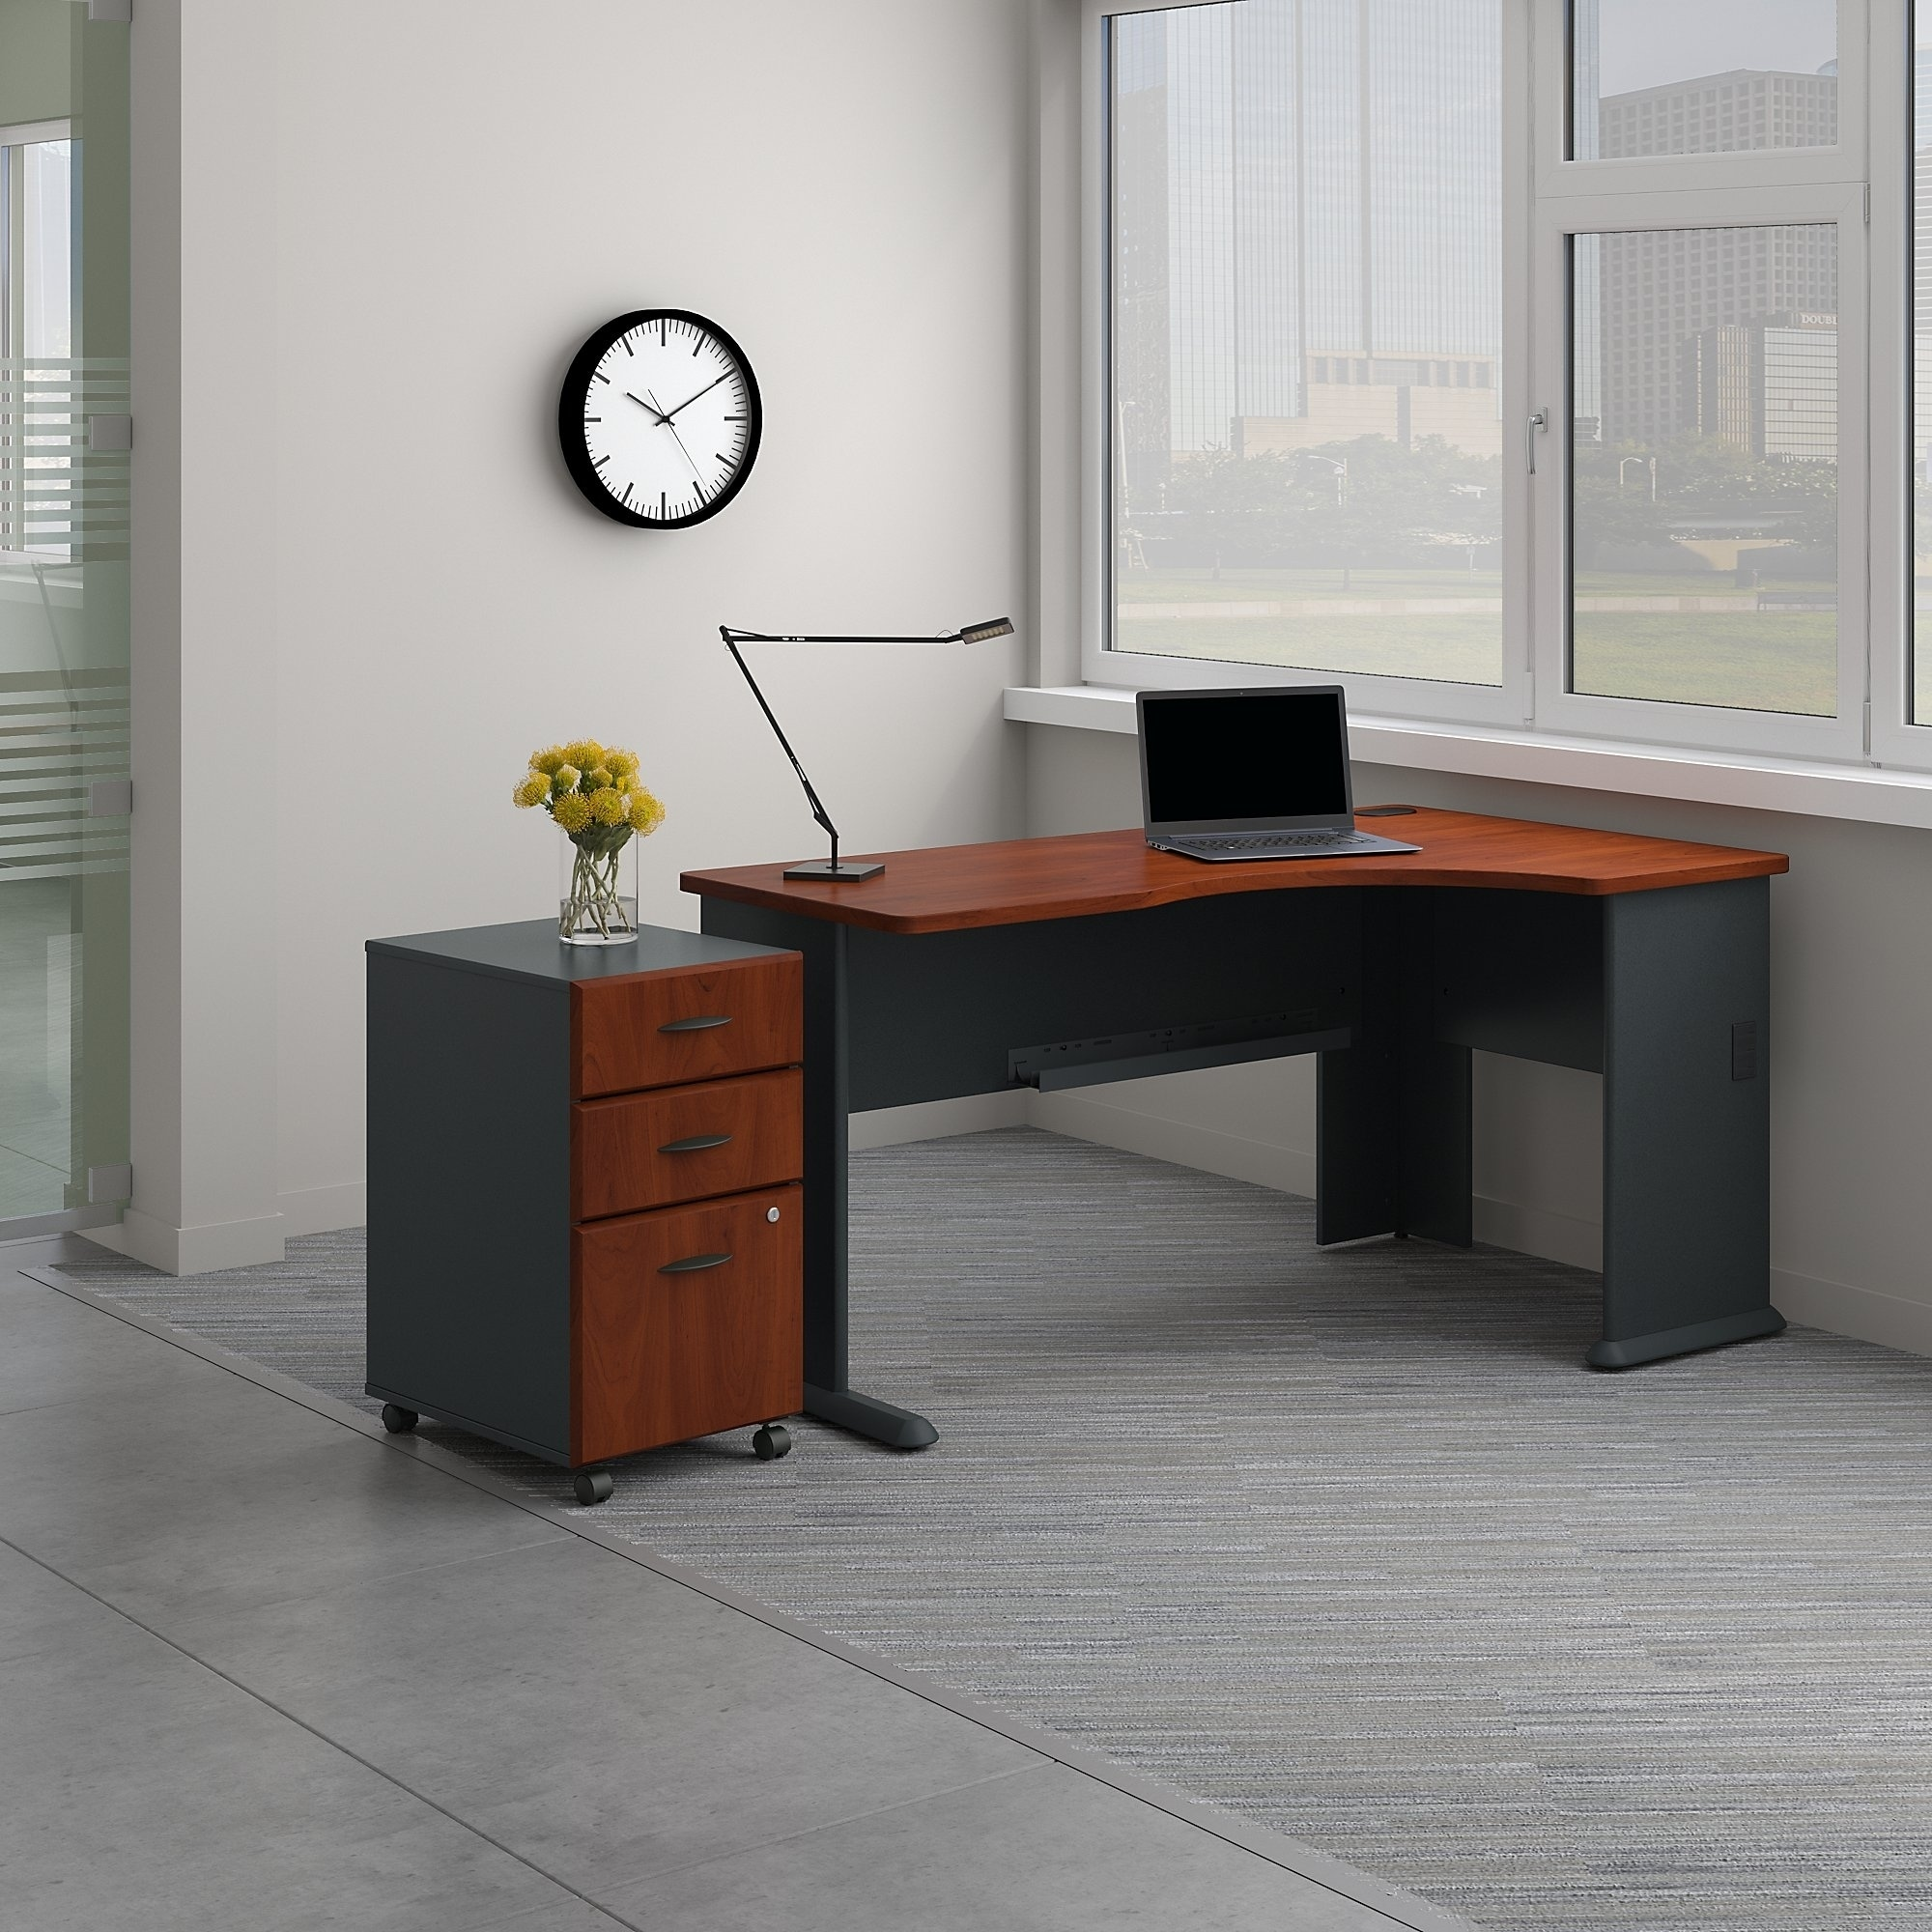 Shop Series A Right Corner Desk With Mobile File Cabinet In Hansen Cherry    Free Shipping Today   Overstock.com   20757157